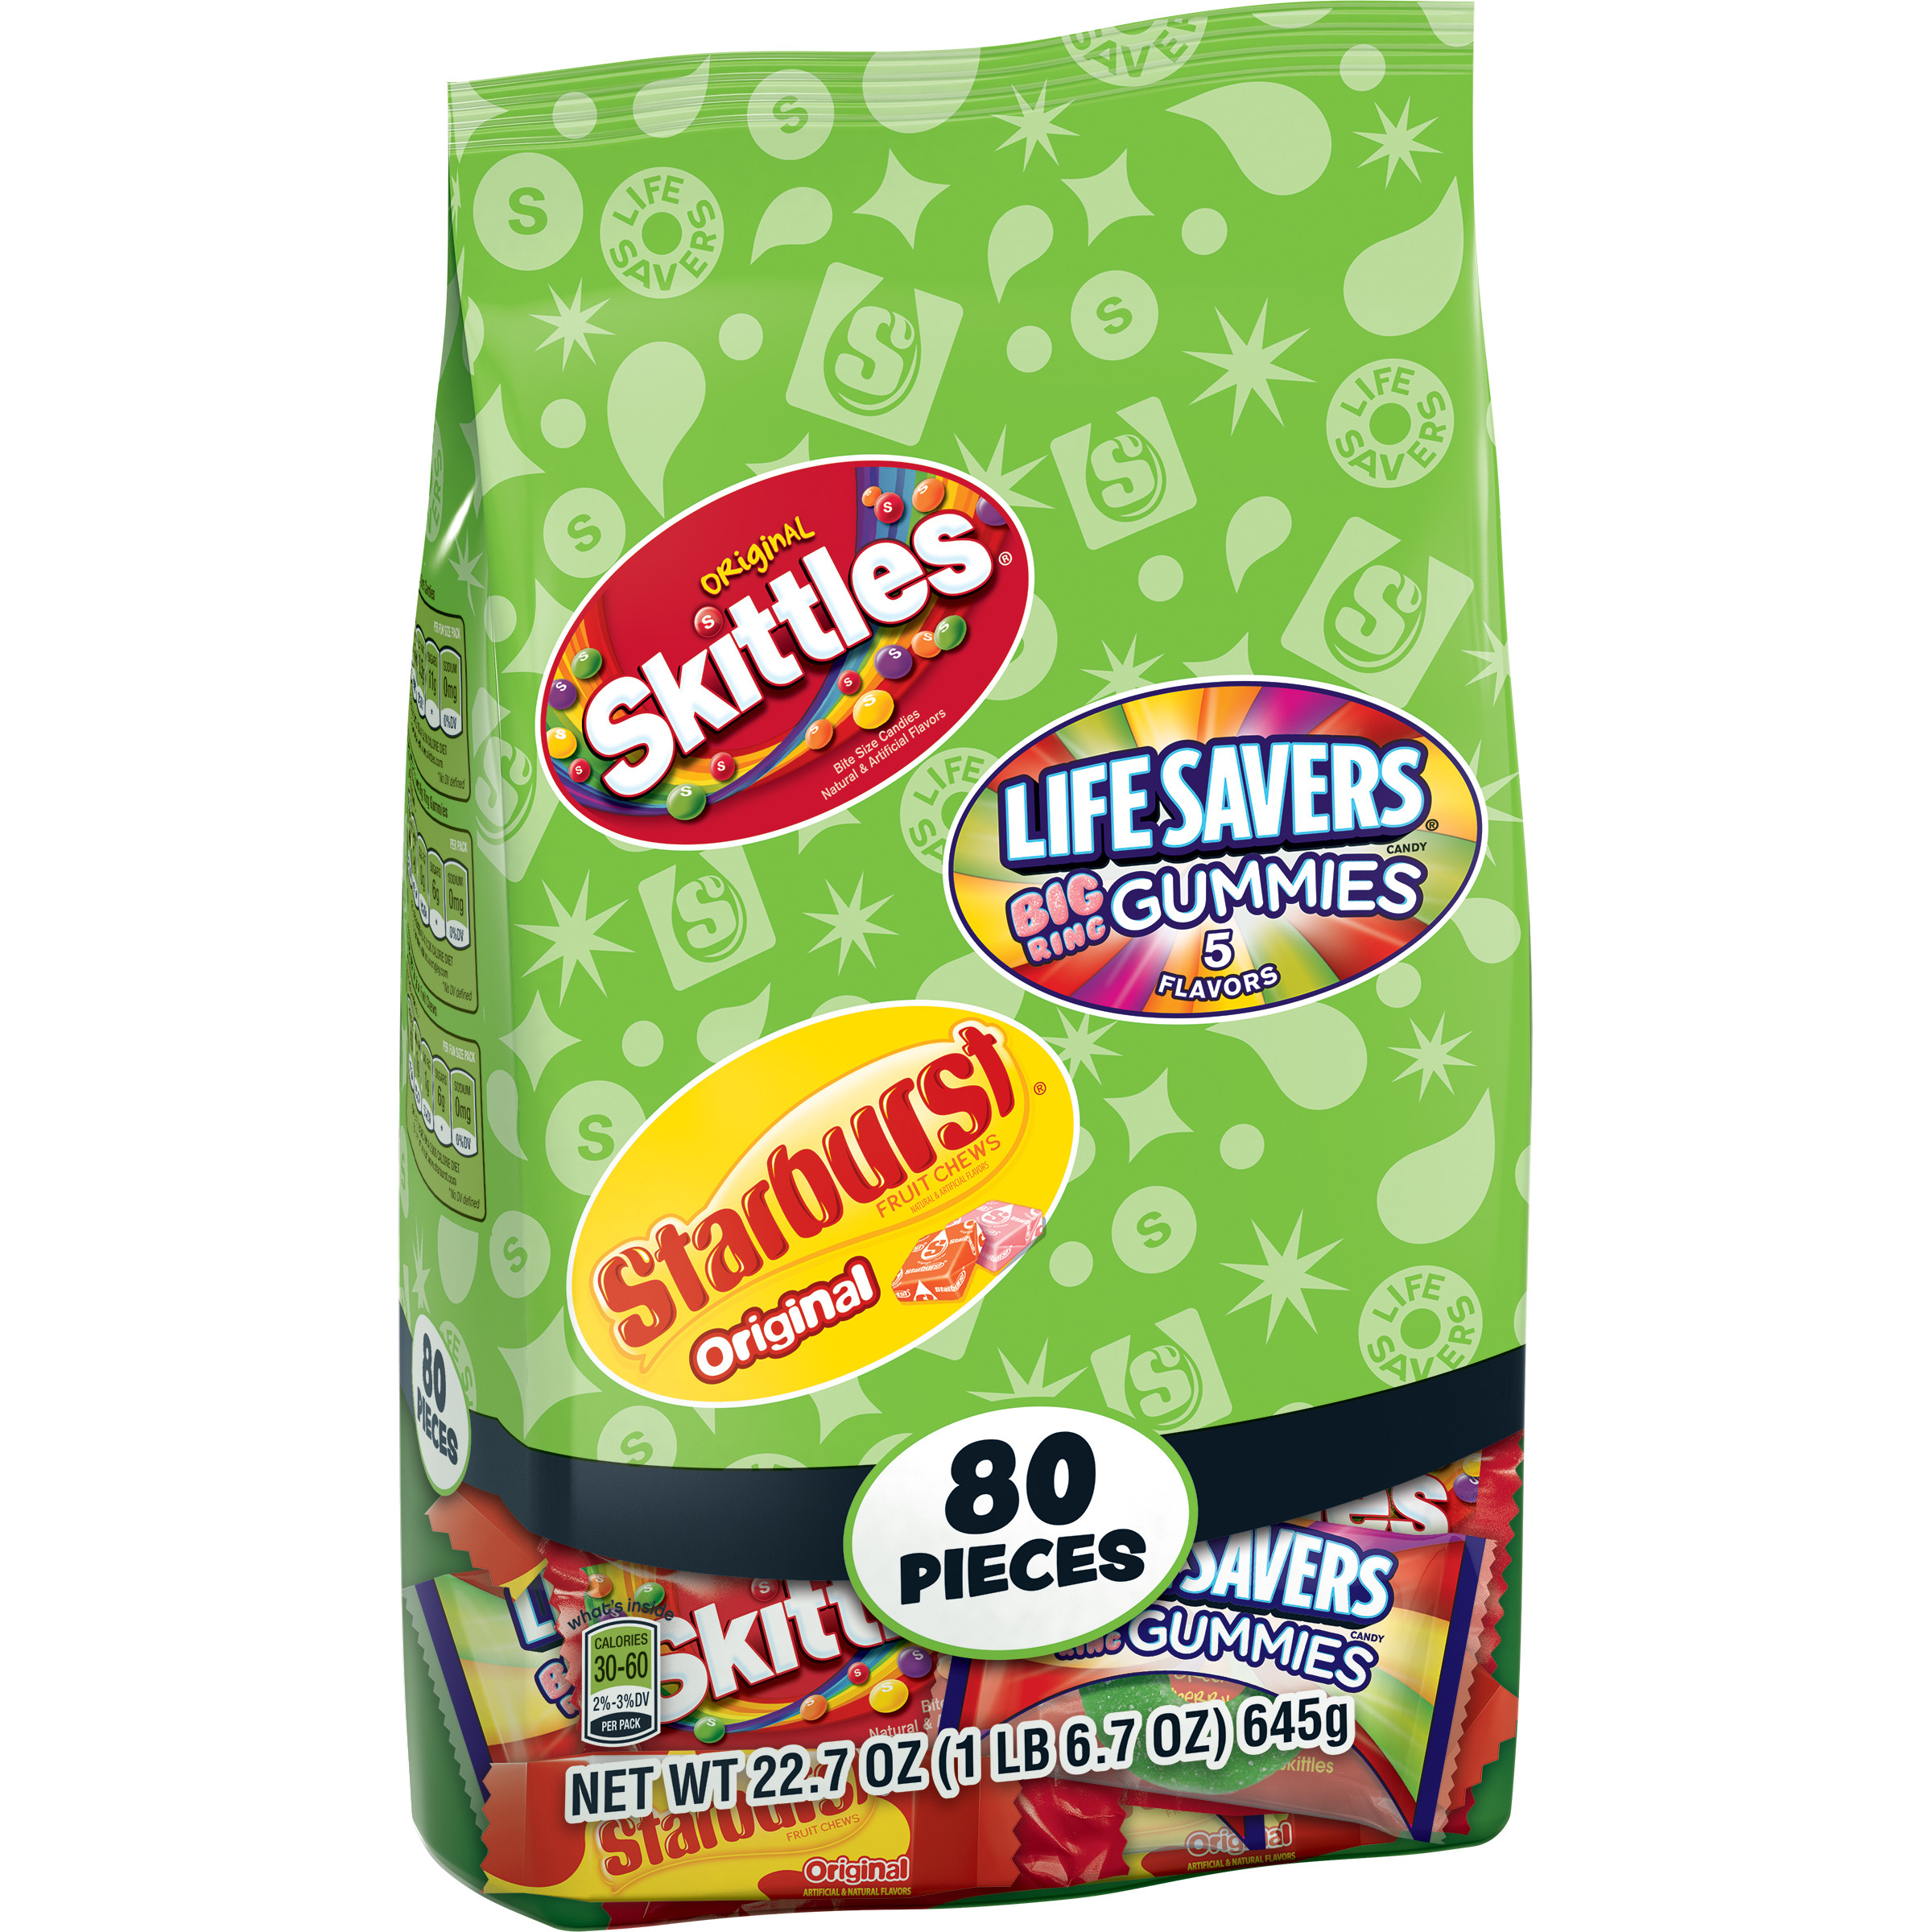 (2 Pack) Skittles, Starburst & Life Savers Fruity Candy, Fun Size Variety Mix Oz, 22.7-Oz 80 Pieces